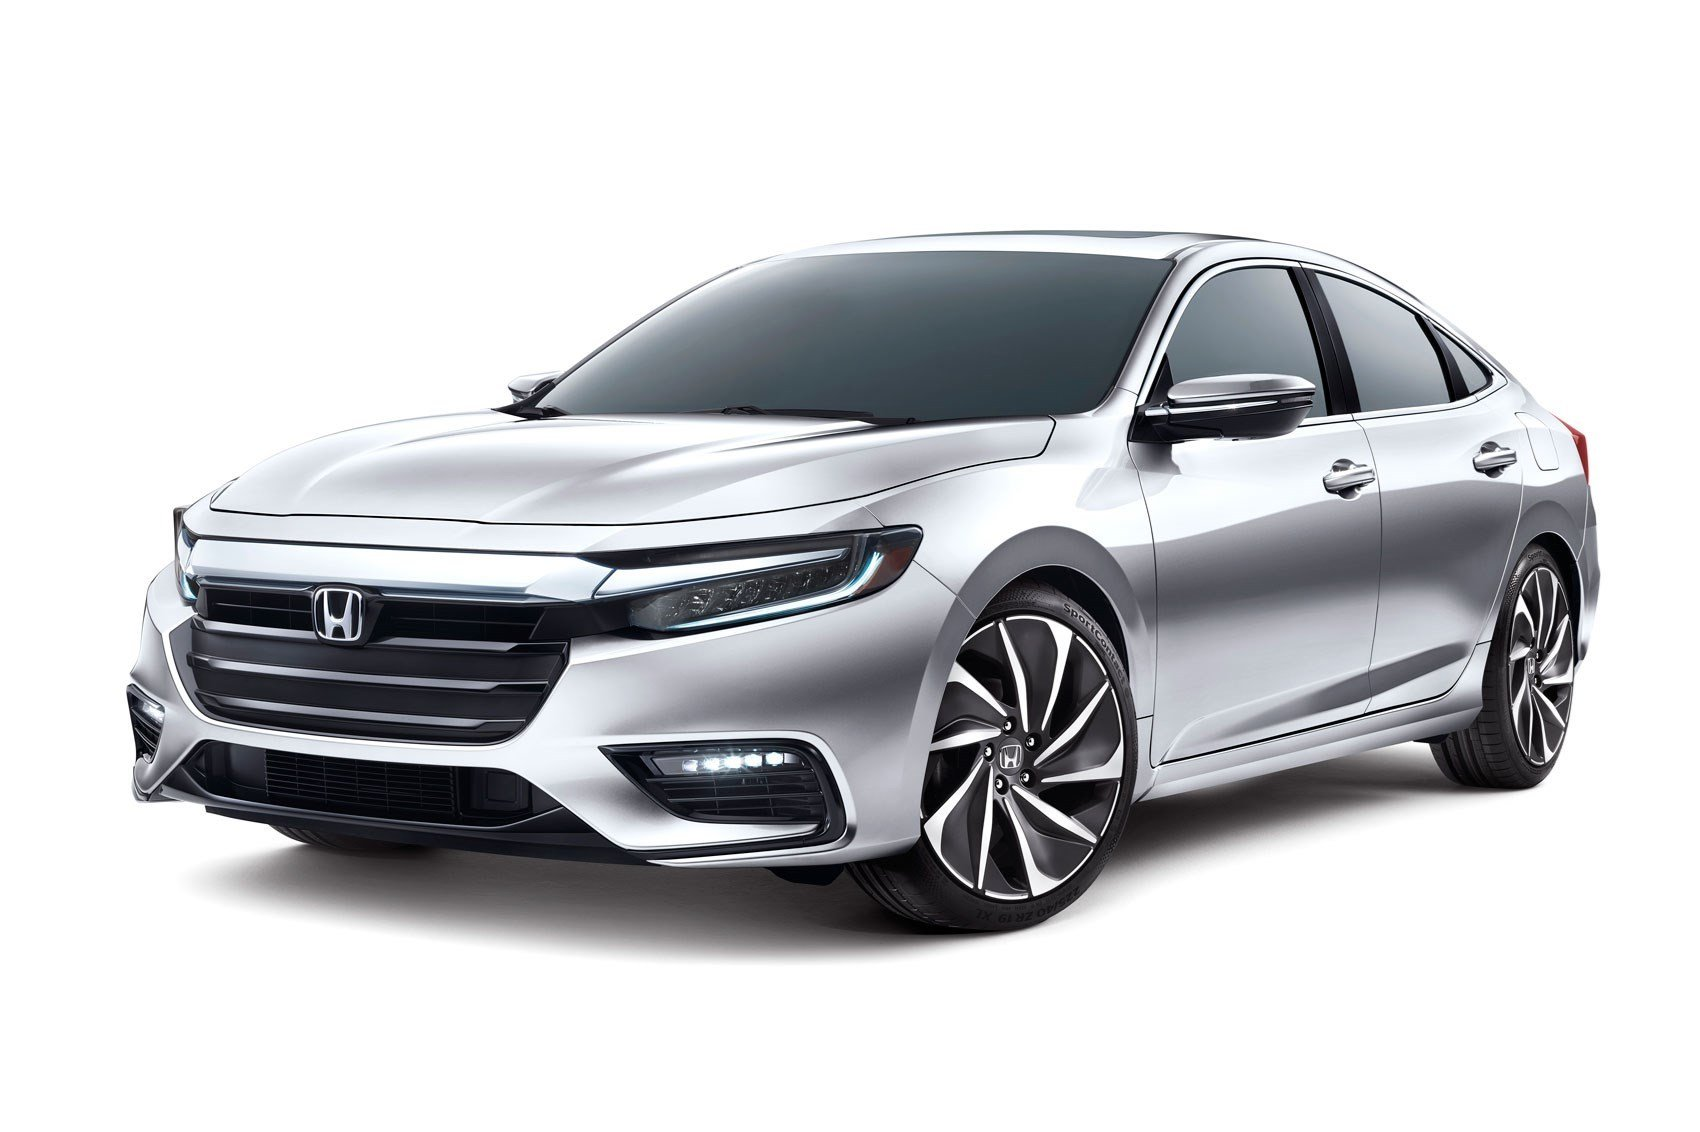 Latest New Honda Insight Sleek Hybrid Prototype S Specs Detailed Free Download